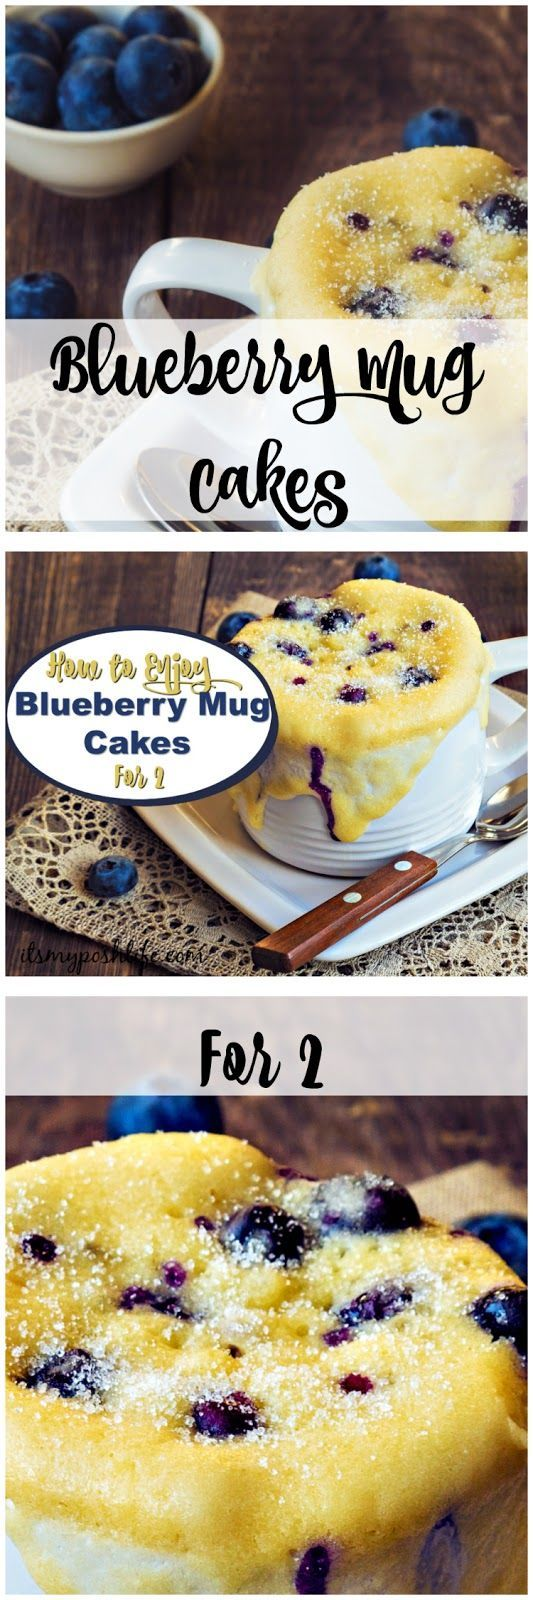 Blueberry Mug Cakes for 2-such an easy and delicious recipe! How to Enjoy Blueberry Mug Cakes for 2 http://poshonabudget.com/2017/01/how-to-enjoy-blueberry-mug-cakes-for-2.html via @poshonabudget